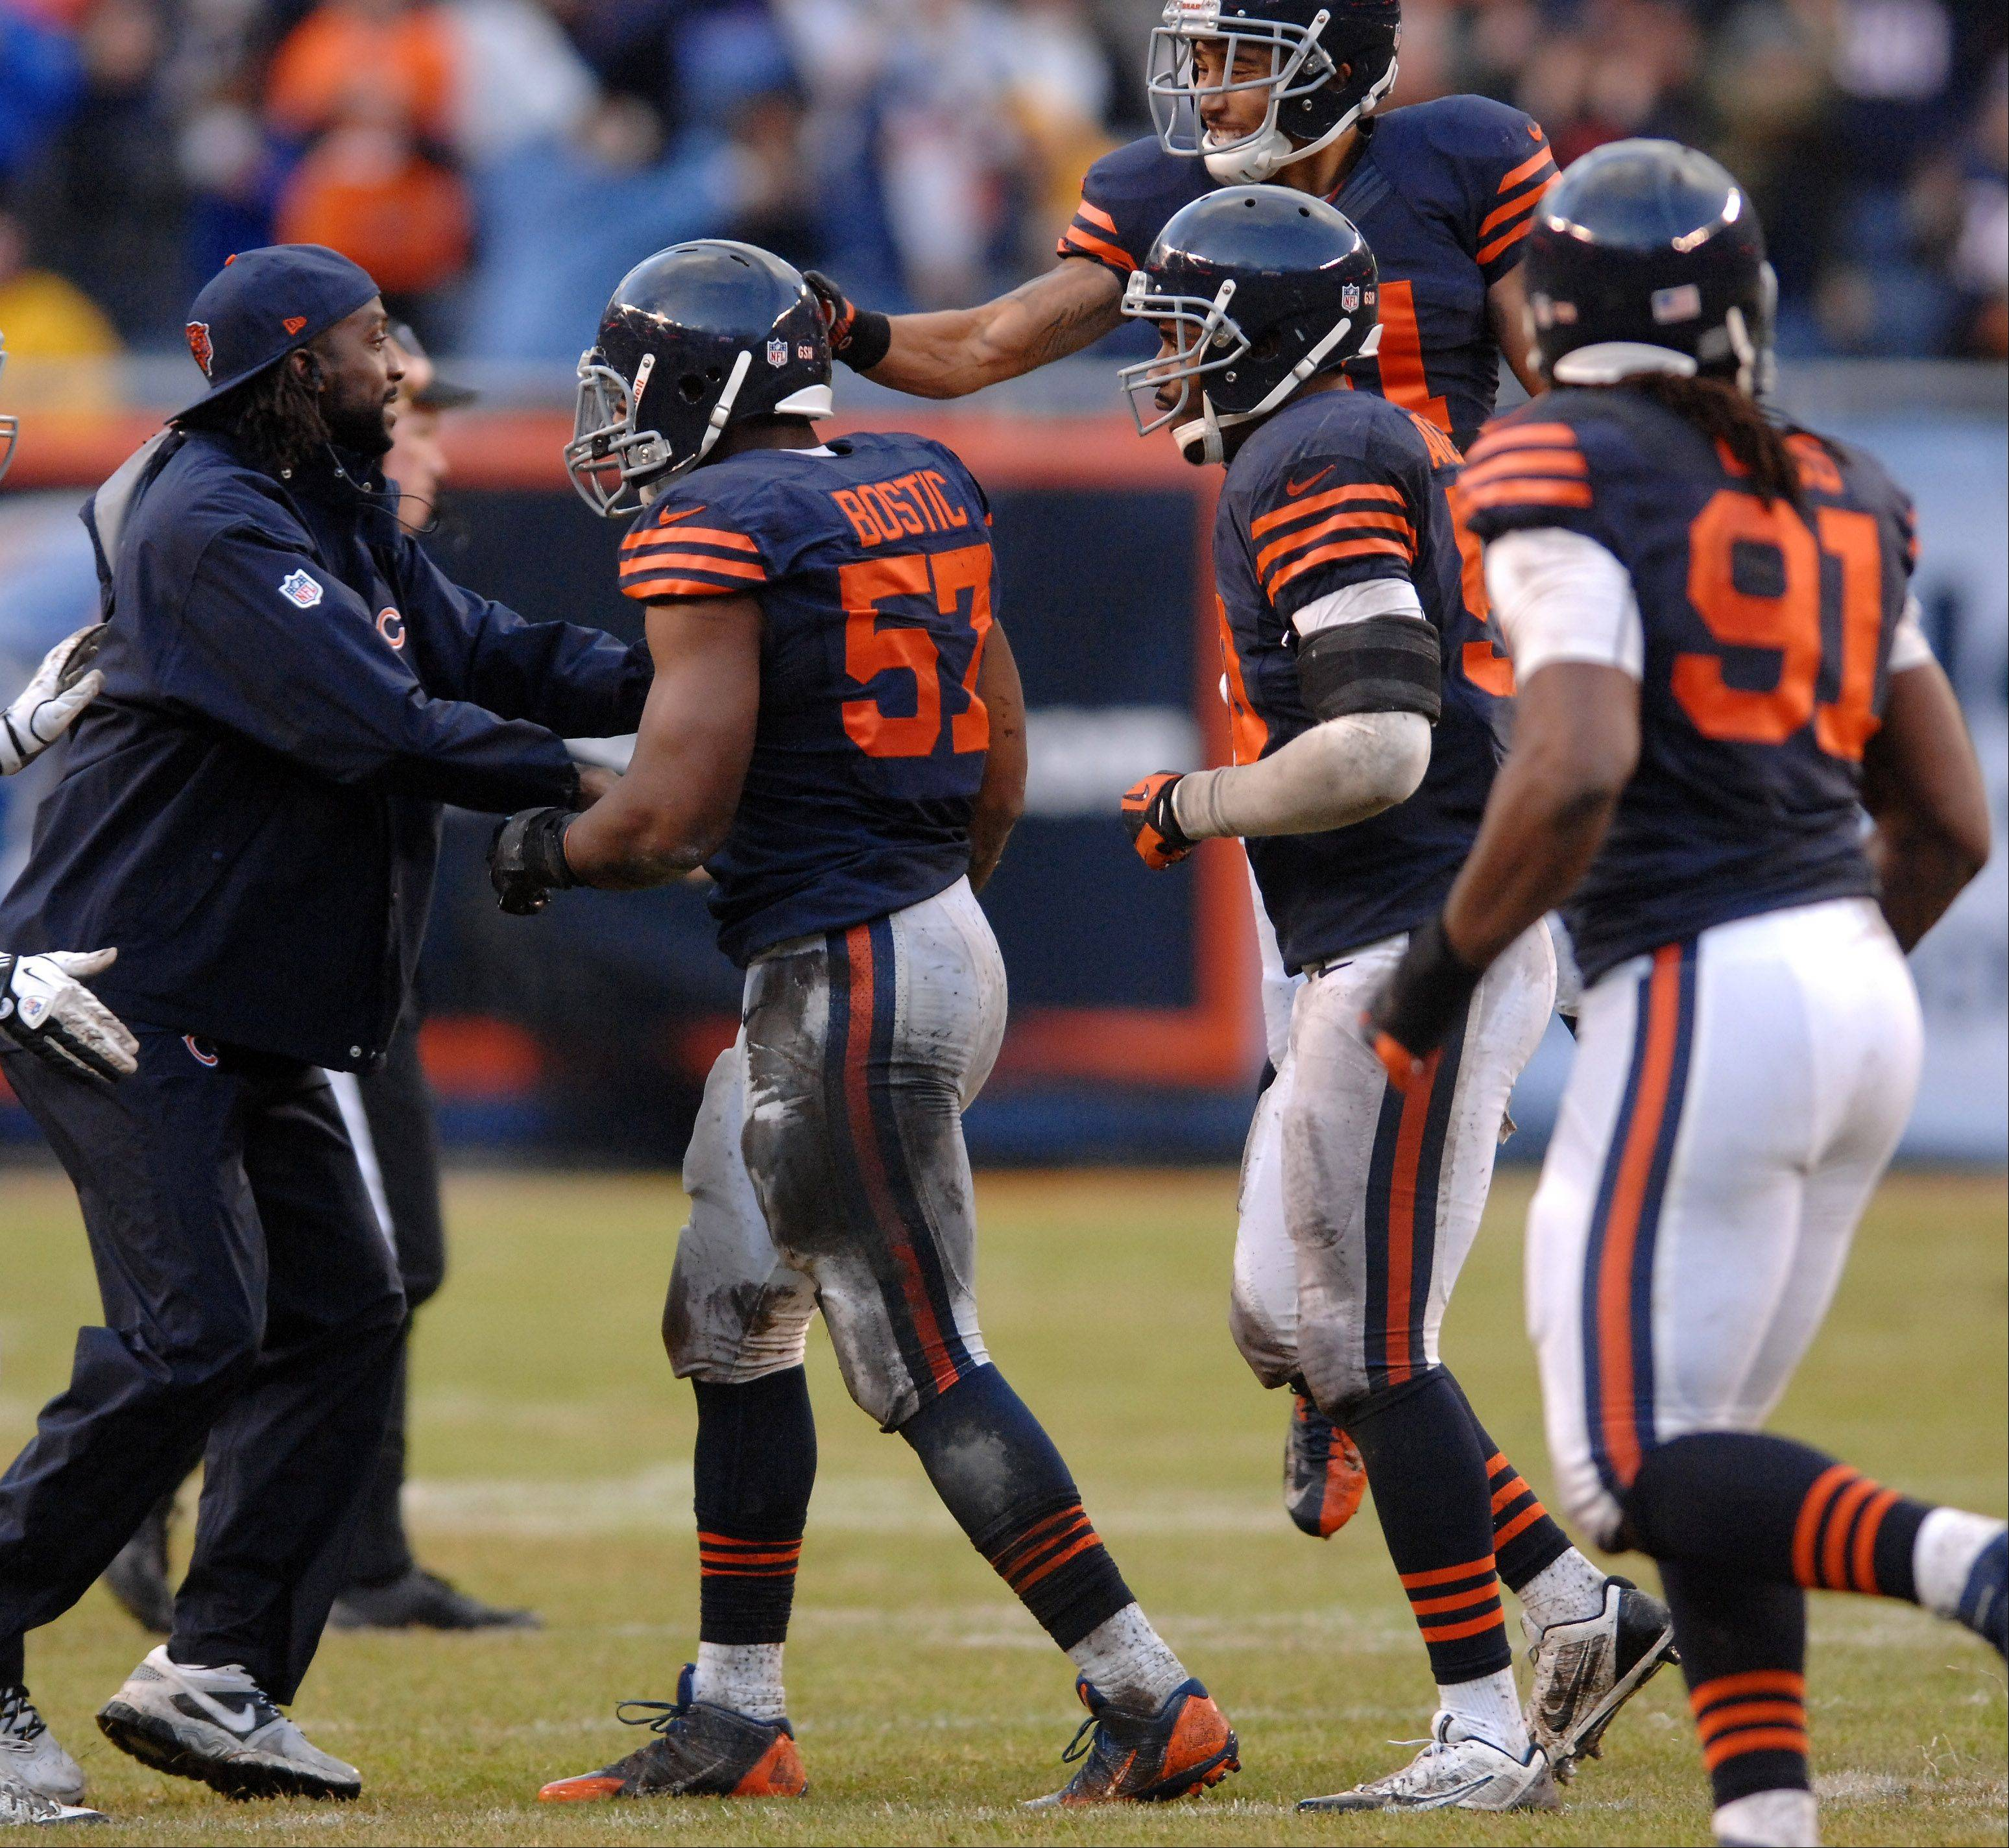 Rick West/rwest@dailyherald.com Injured cornerback Charles Tillman greets and congratulates Bears linebacker Jon Bostic after his interception during Sunday's victory over Baltimore.